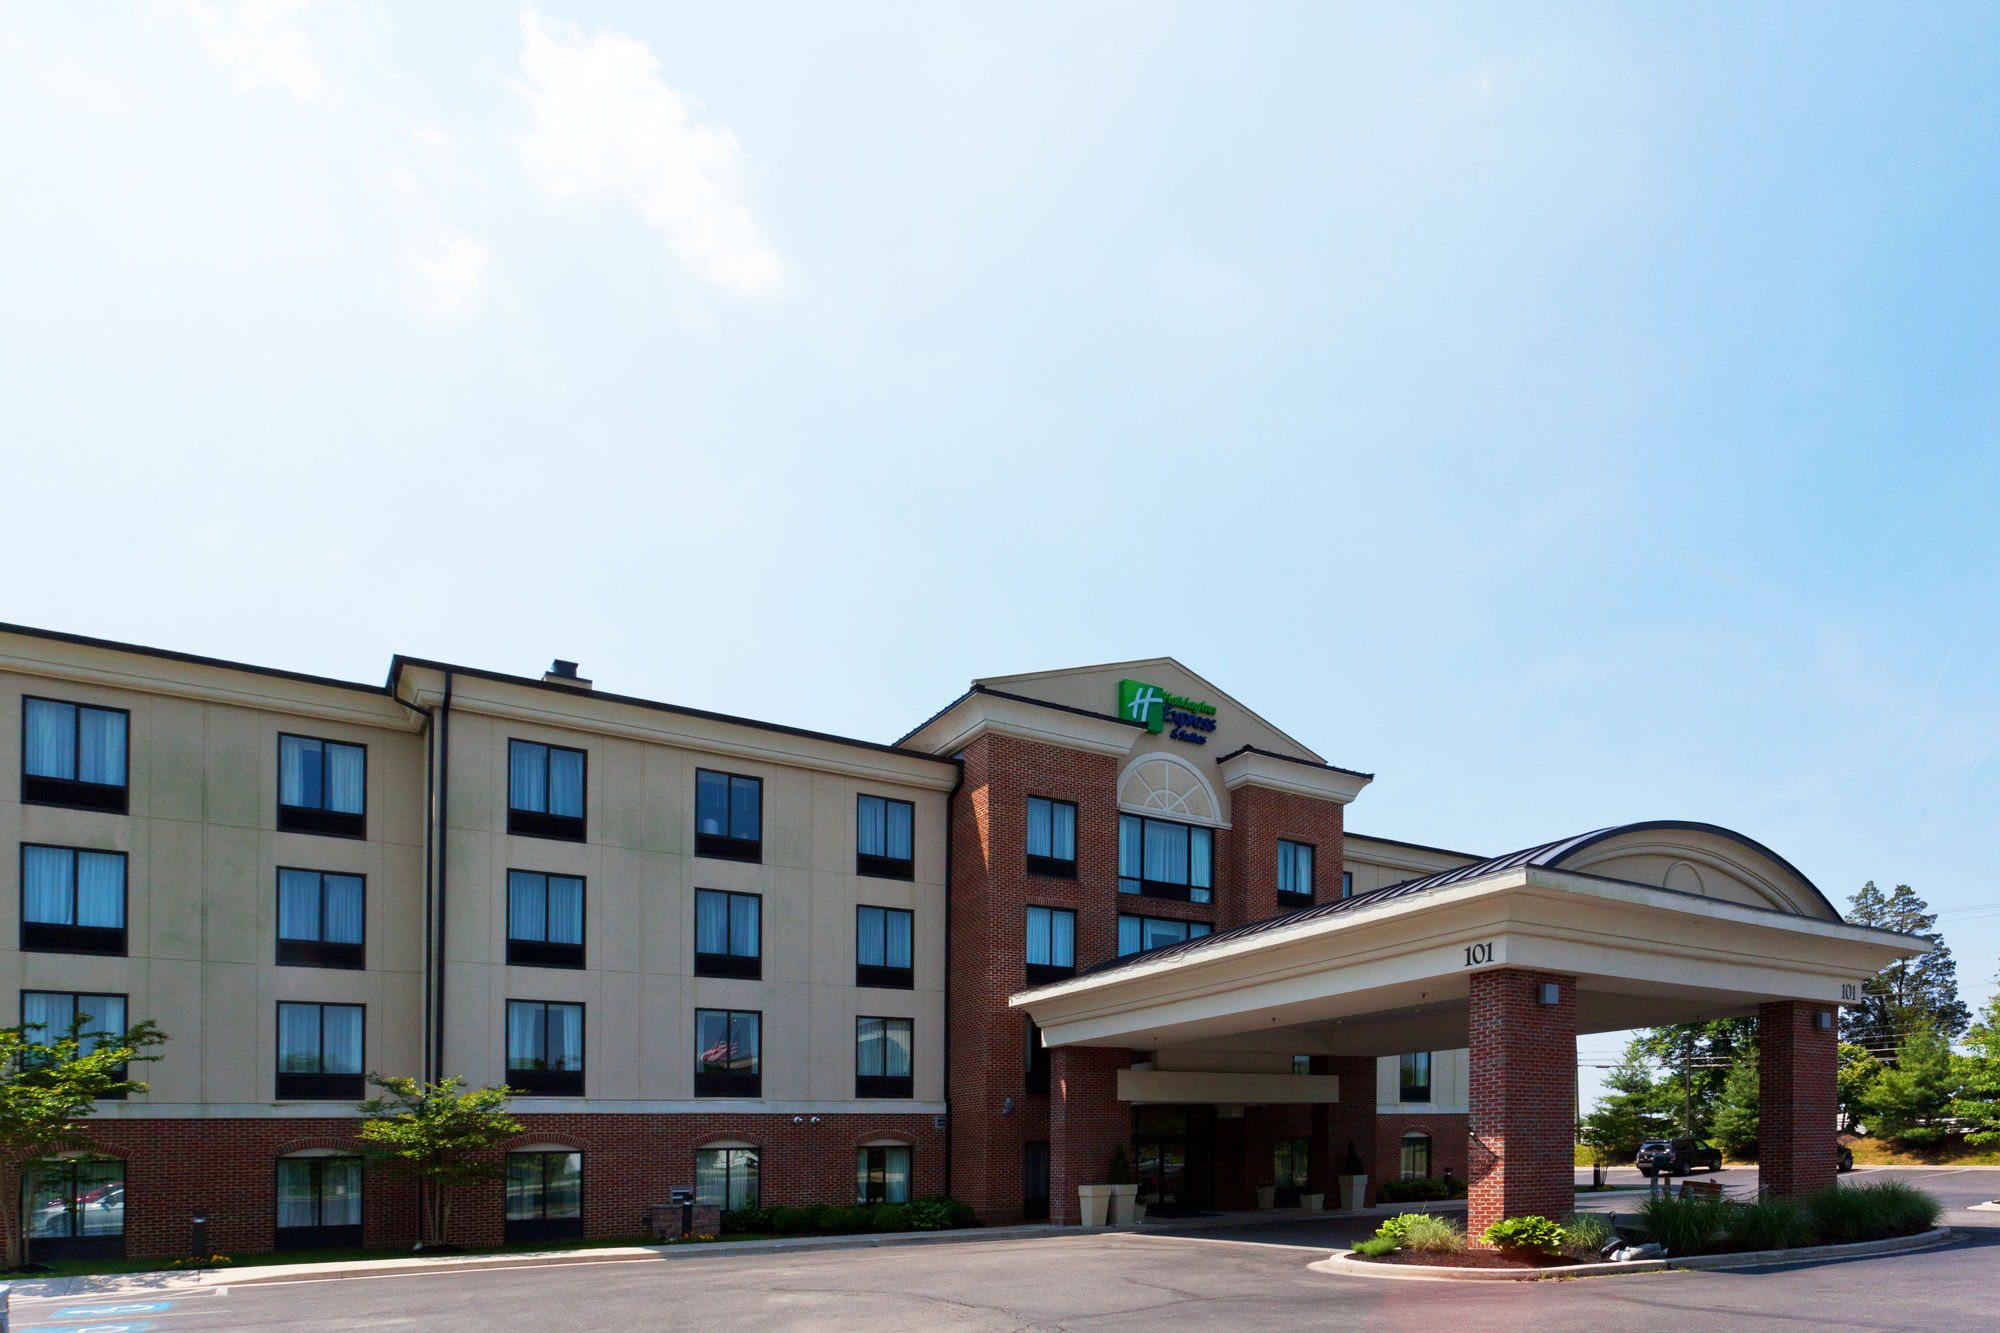 Holiday Inn Express North East in North East, MD